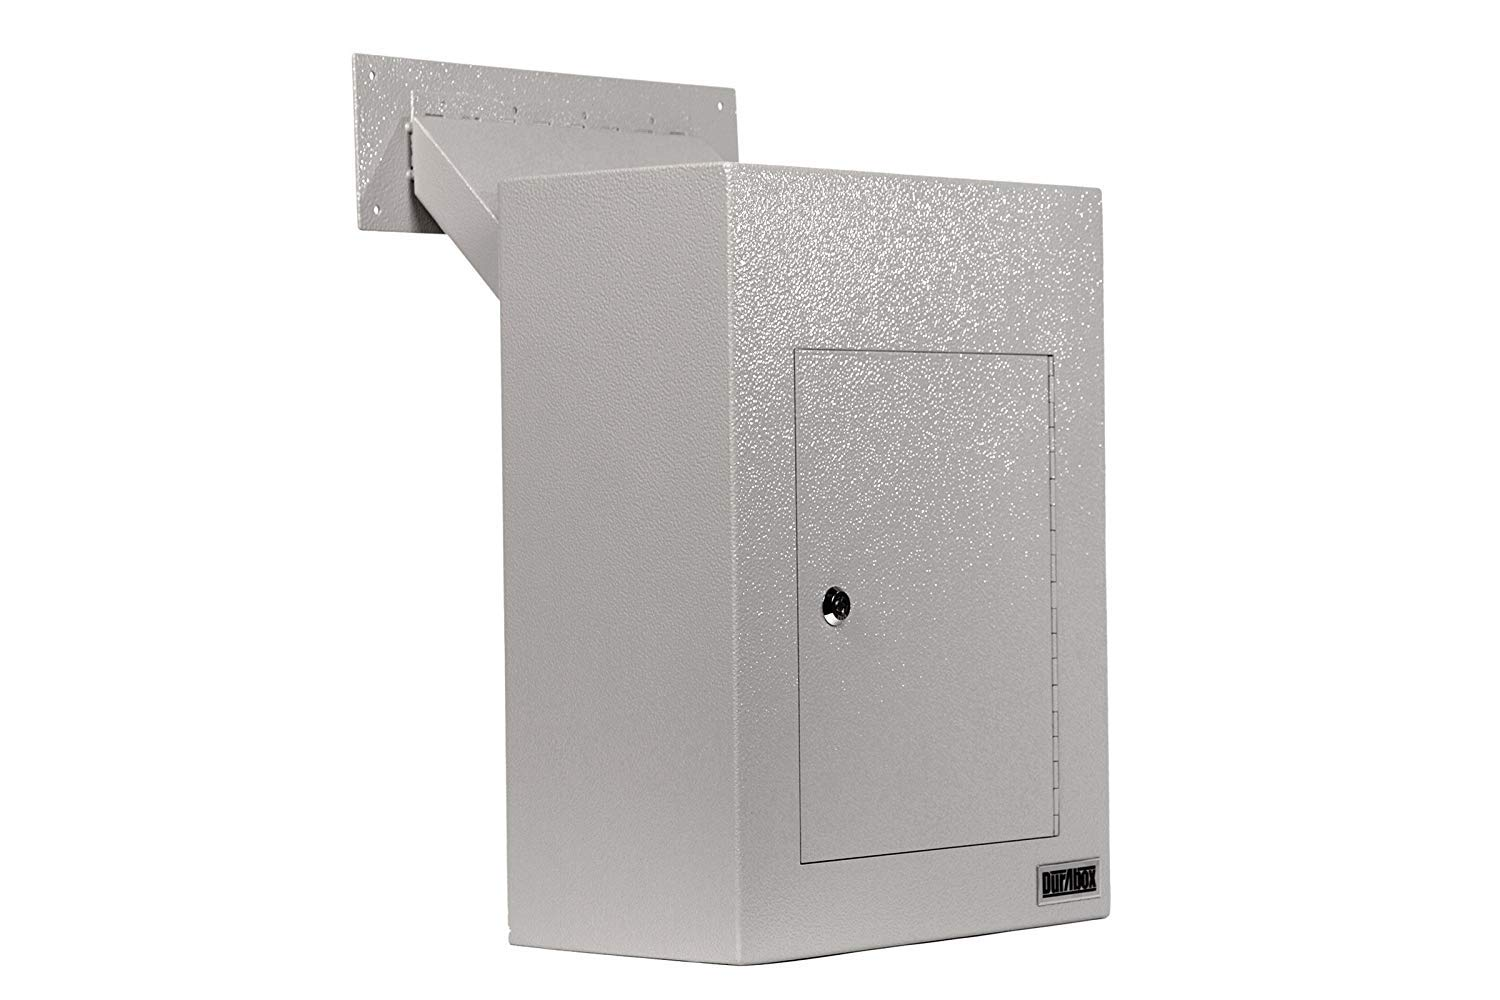 DuraBox D700 Through the Wall Drop Box w/ Adjustable Chute Deposit Safe Mail Box by DuraBox